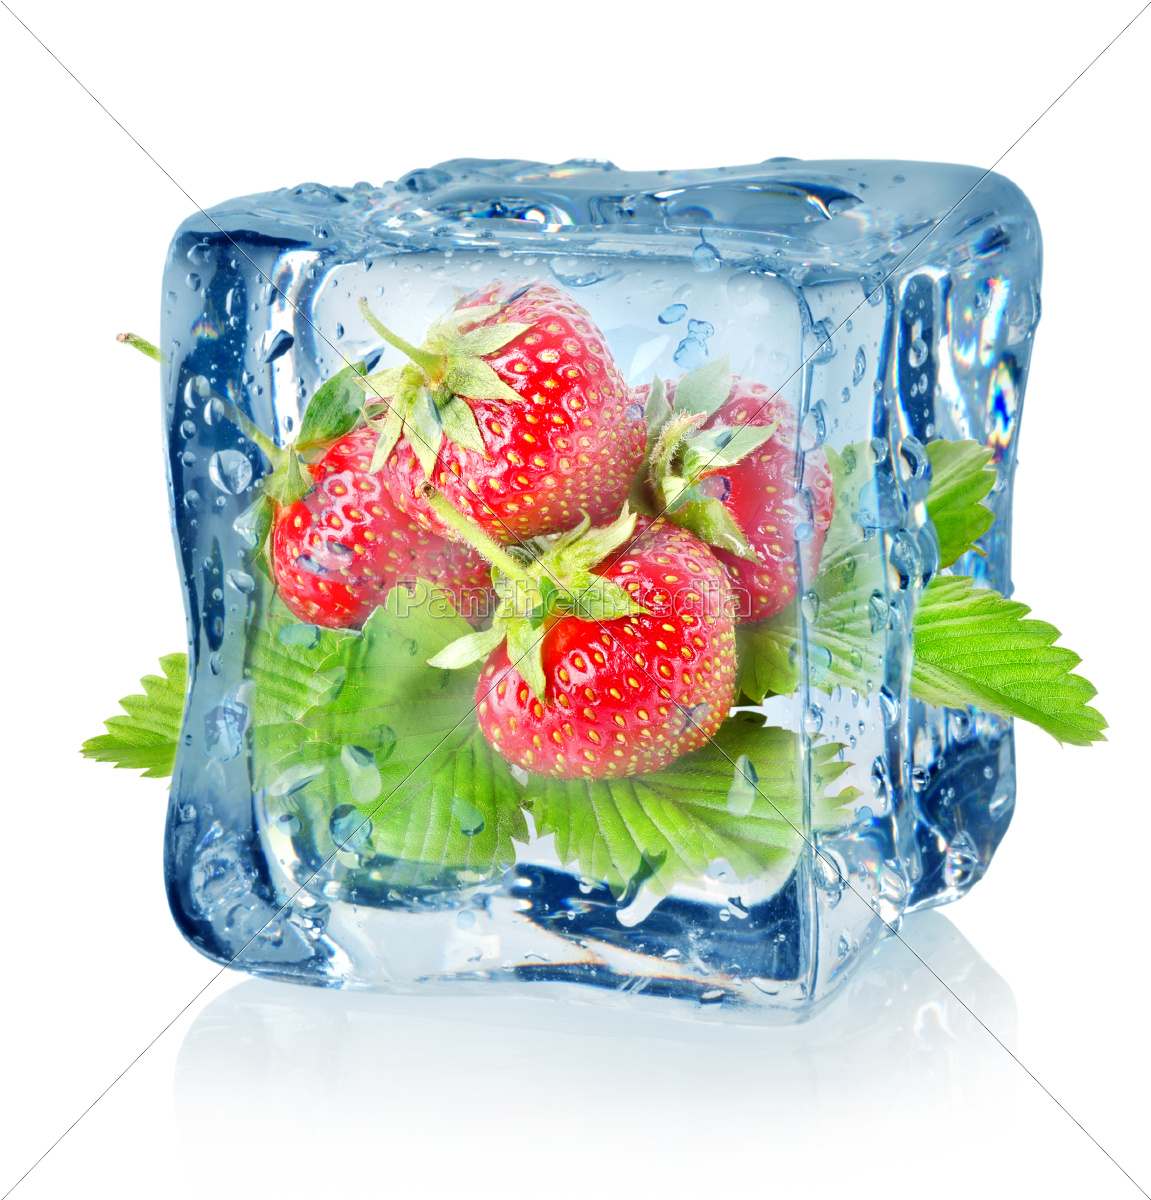 ice, cube, and, strawberry, isolated - 10124671